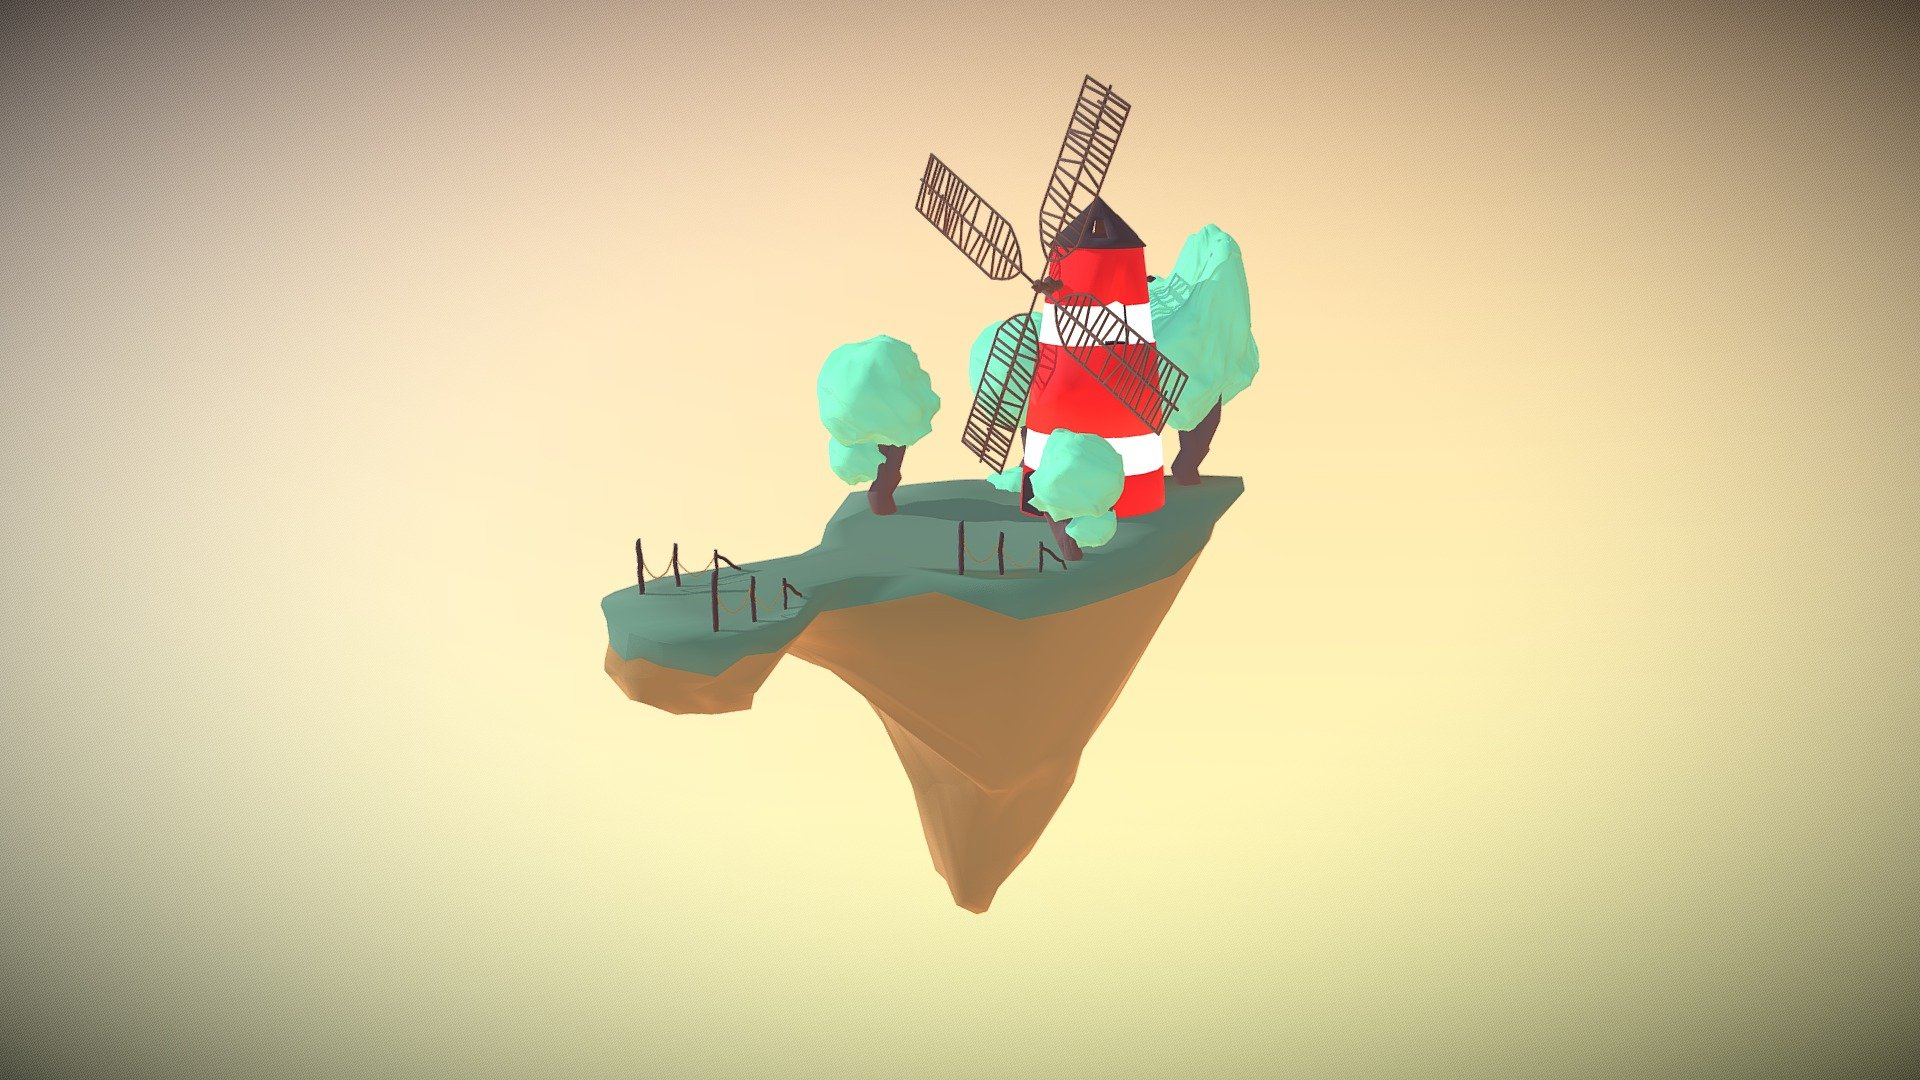 Windmil Feel Good Inc 3d Model By Rowes Rowes 5a6aff4